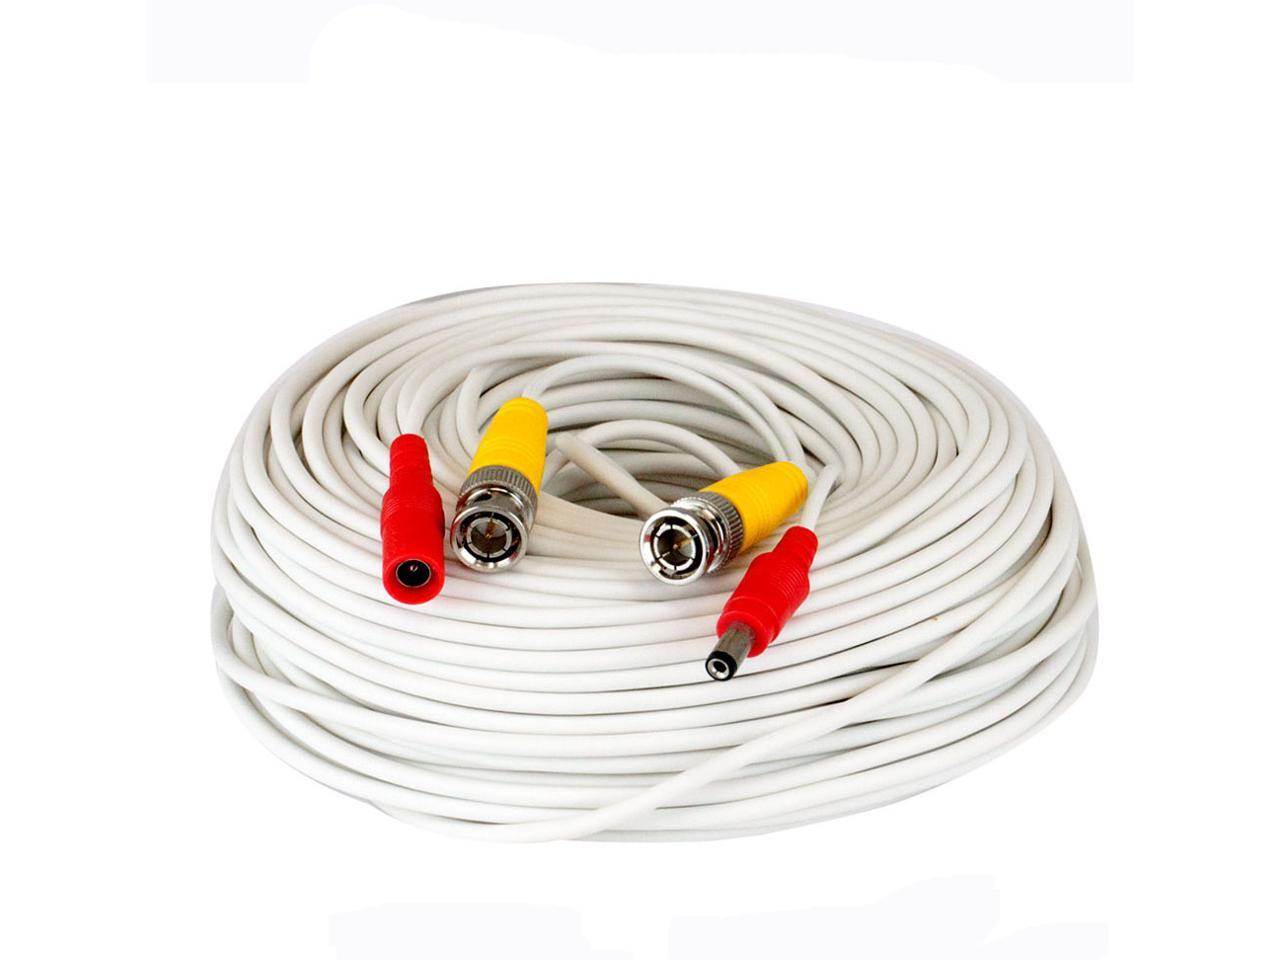 All in one 100ft HEAVY DUTY PREMADE SIAMESE CABLE White color